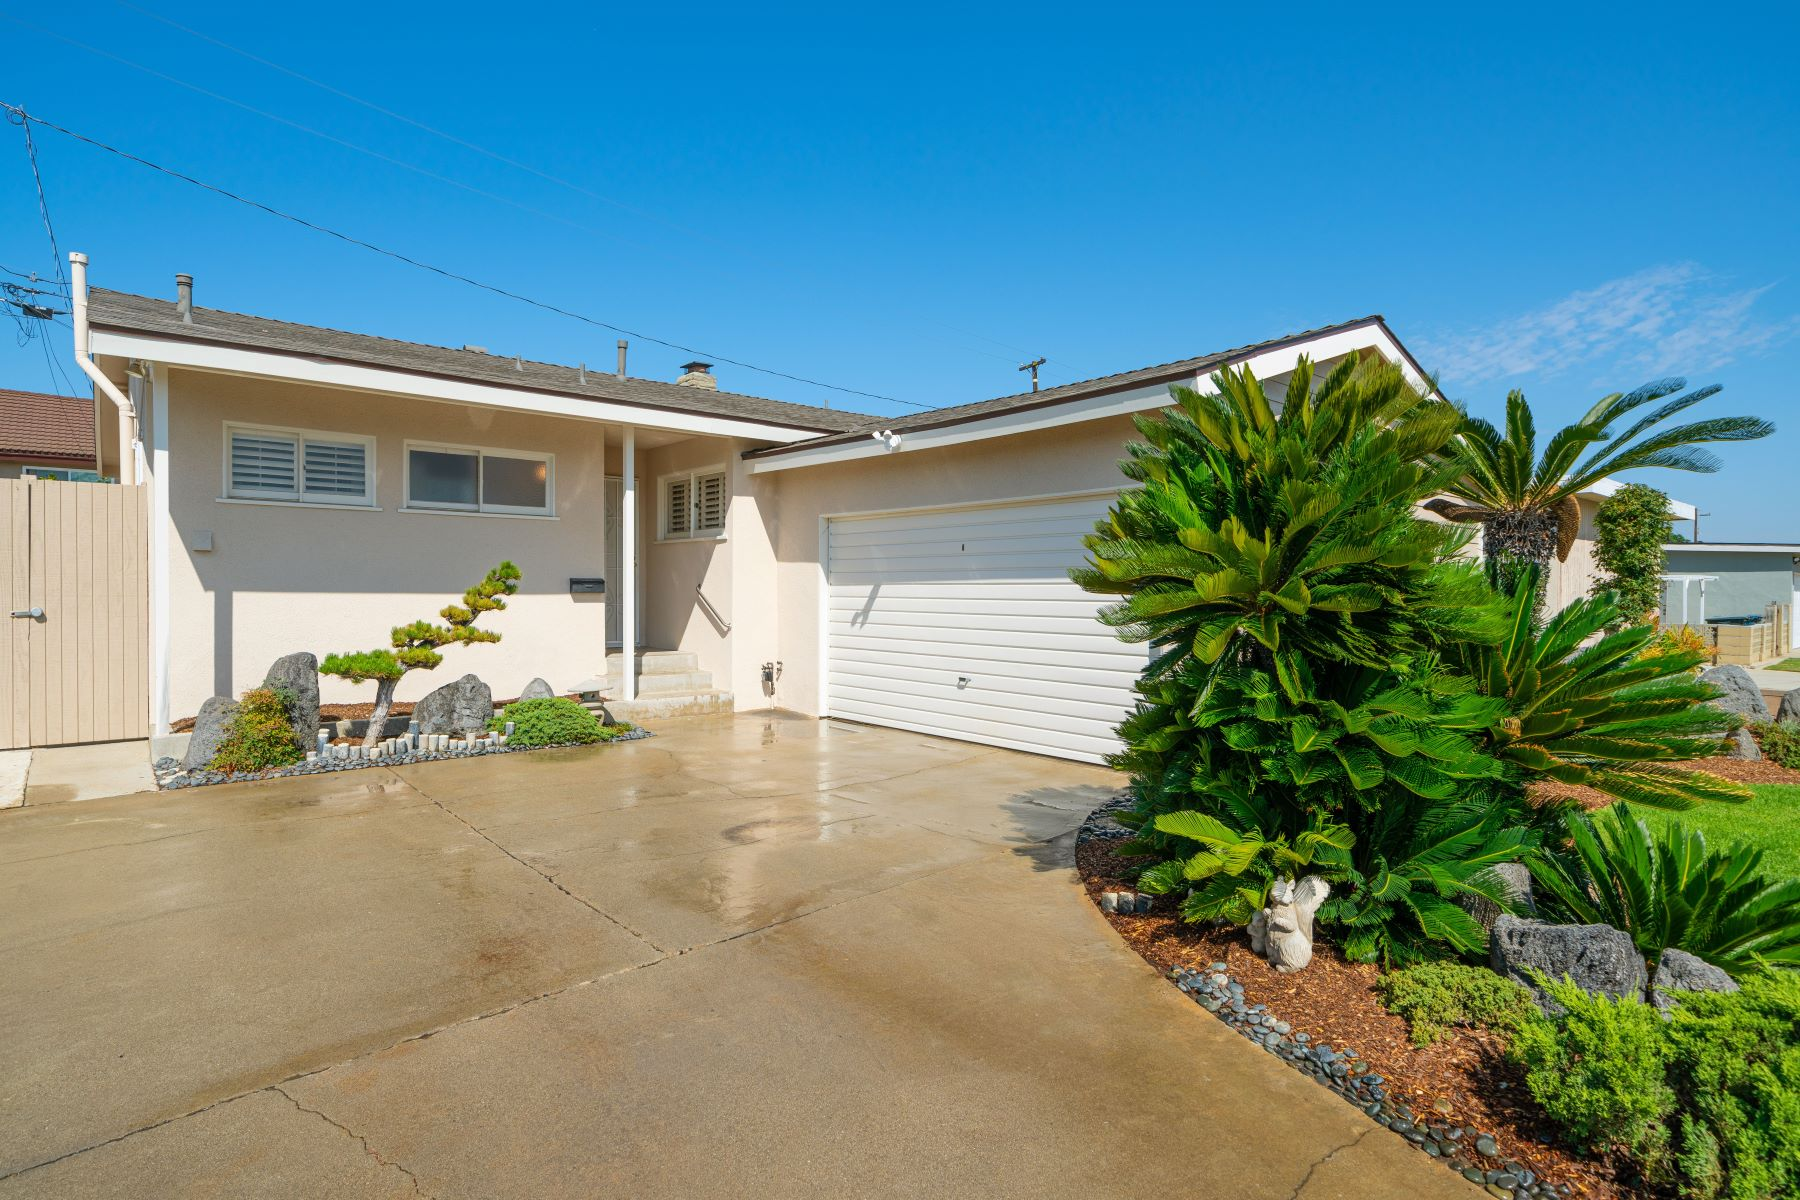 Single Family Homes for Sale at 17111 Raymond Place, Gardena, CA 90247 17111 Raymond Place Gardena, California 90247 United States